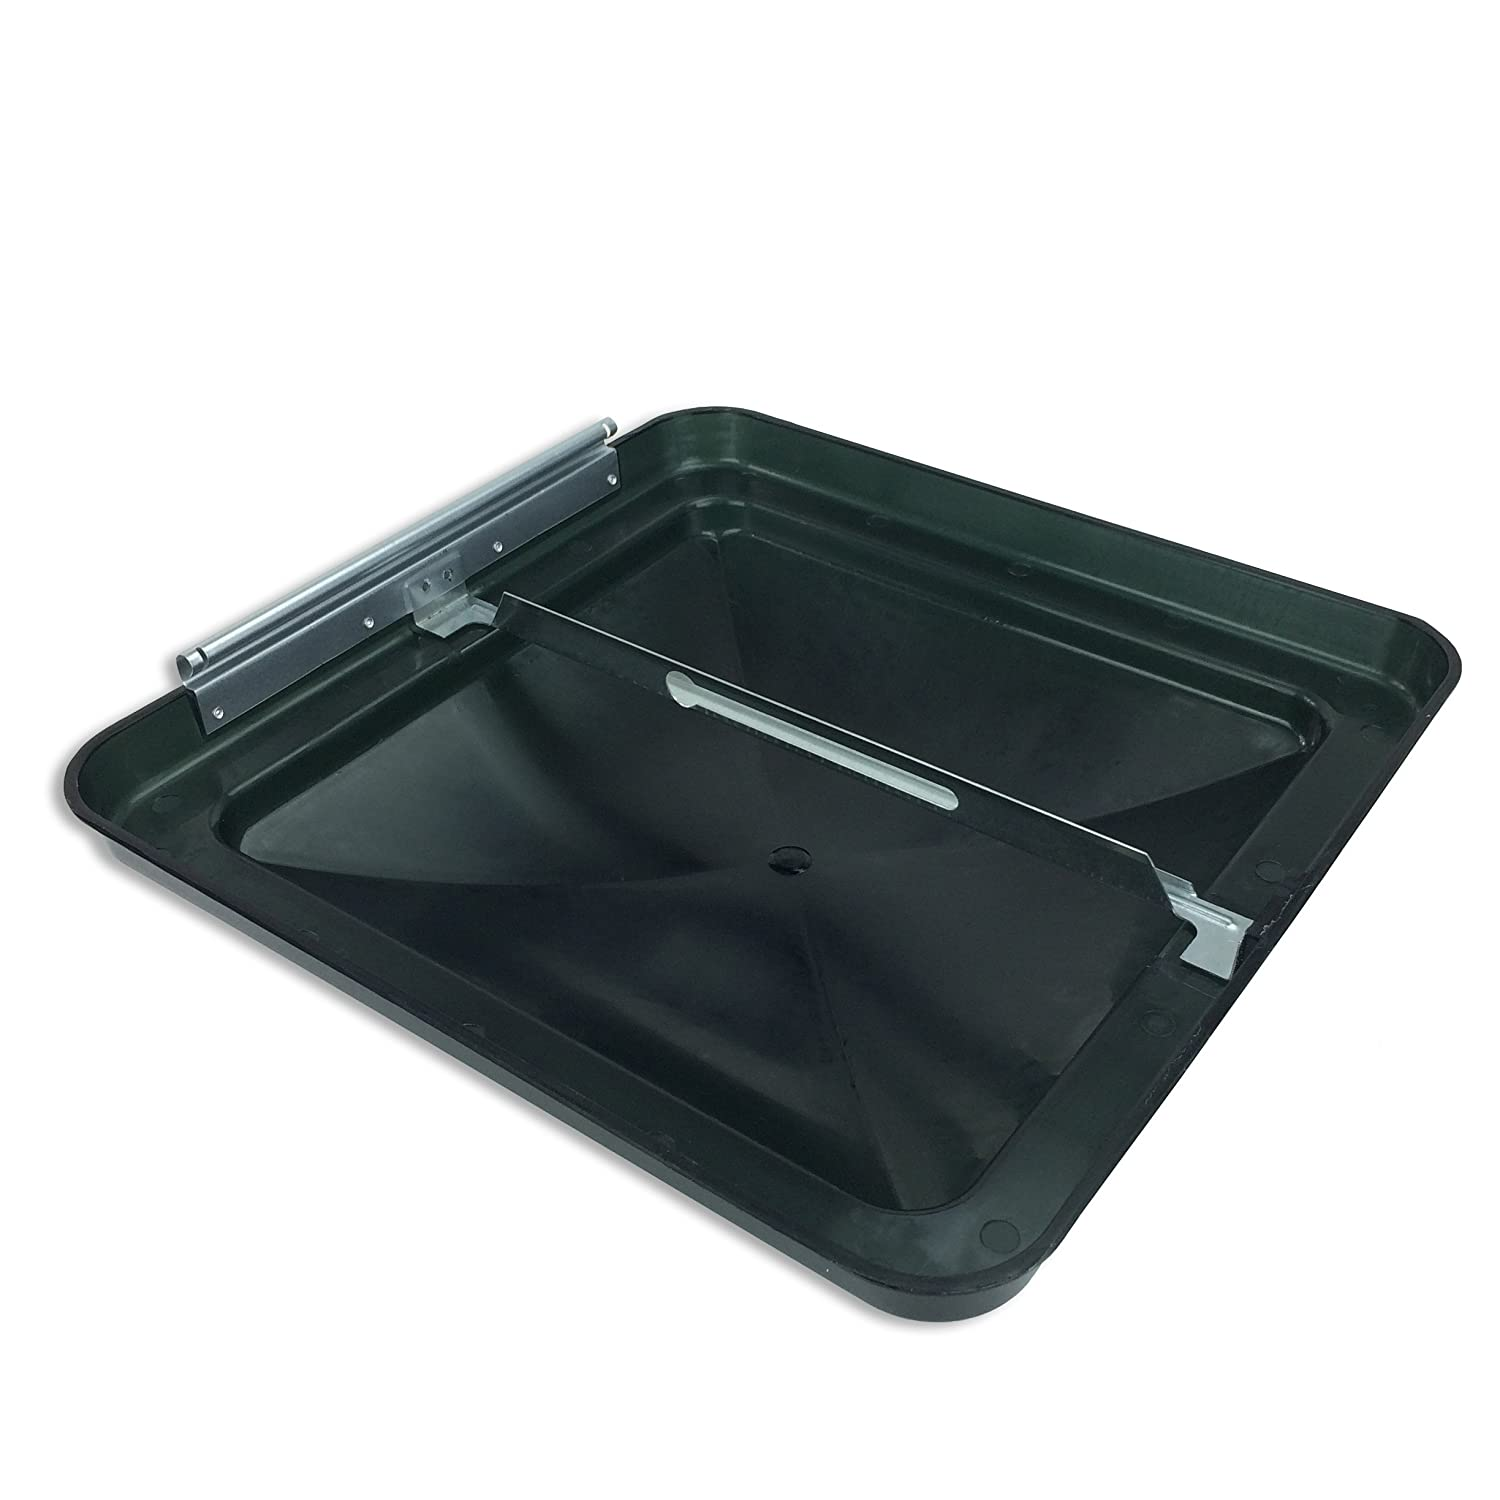 Hengs NEW BLACK 14X14 14 X 14 REPLACEMENT ROOF VENT COVER FOR CAMPERS RVS TRAILERS MOTORHOMES